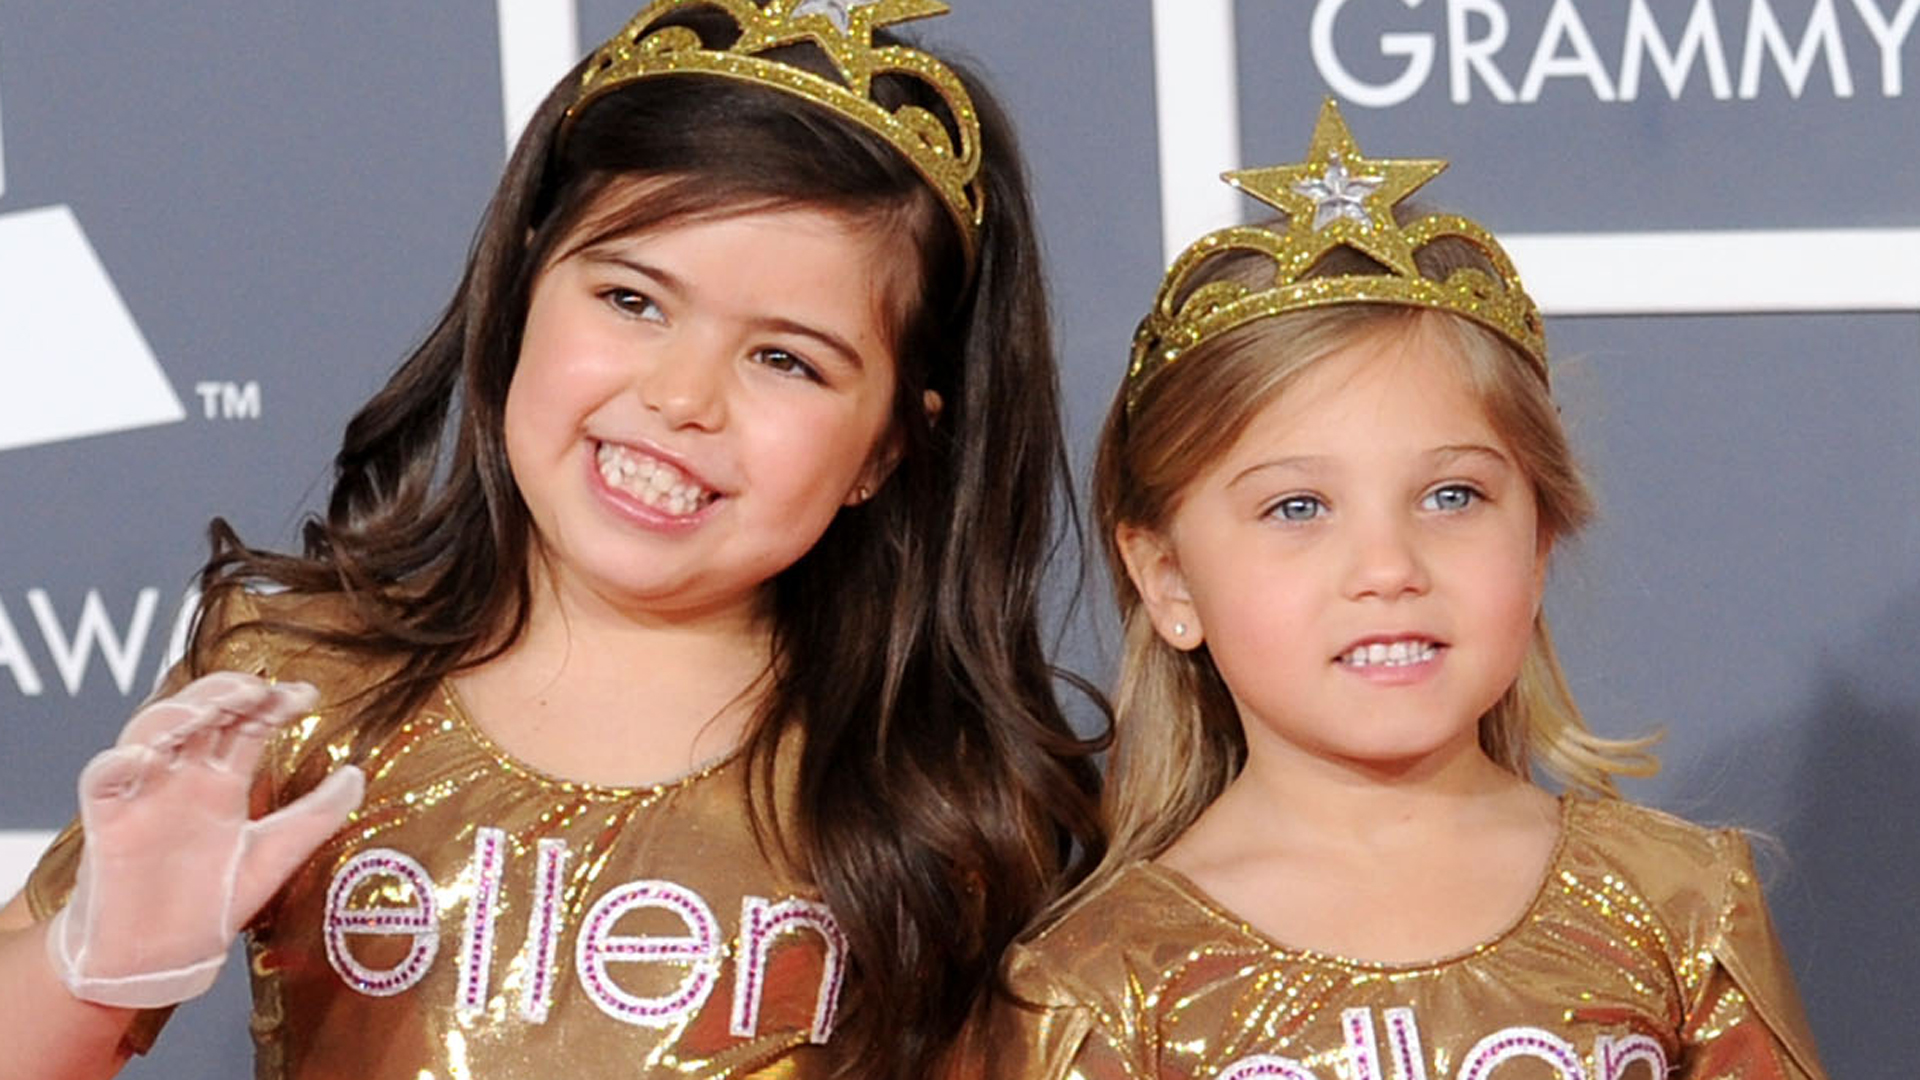 Times Sophia Grace and Rosie proved they were total stars